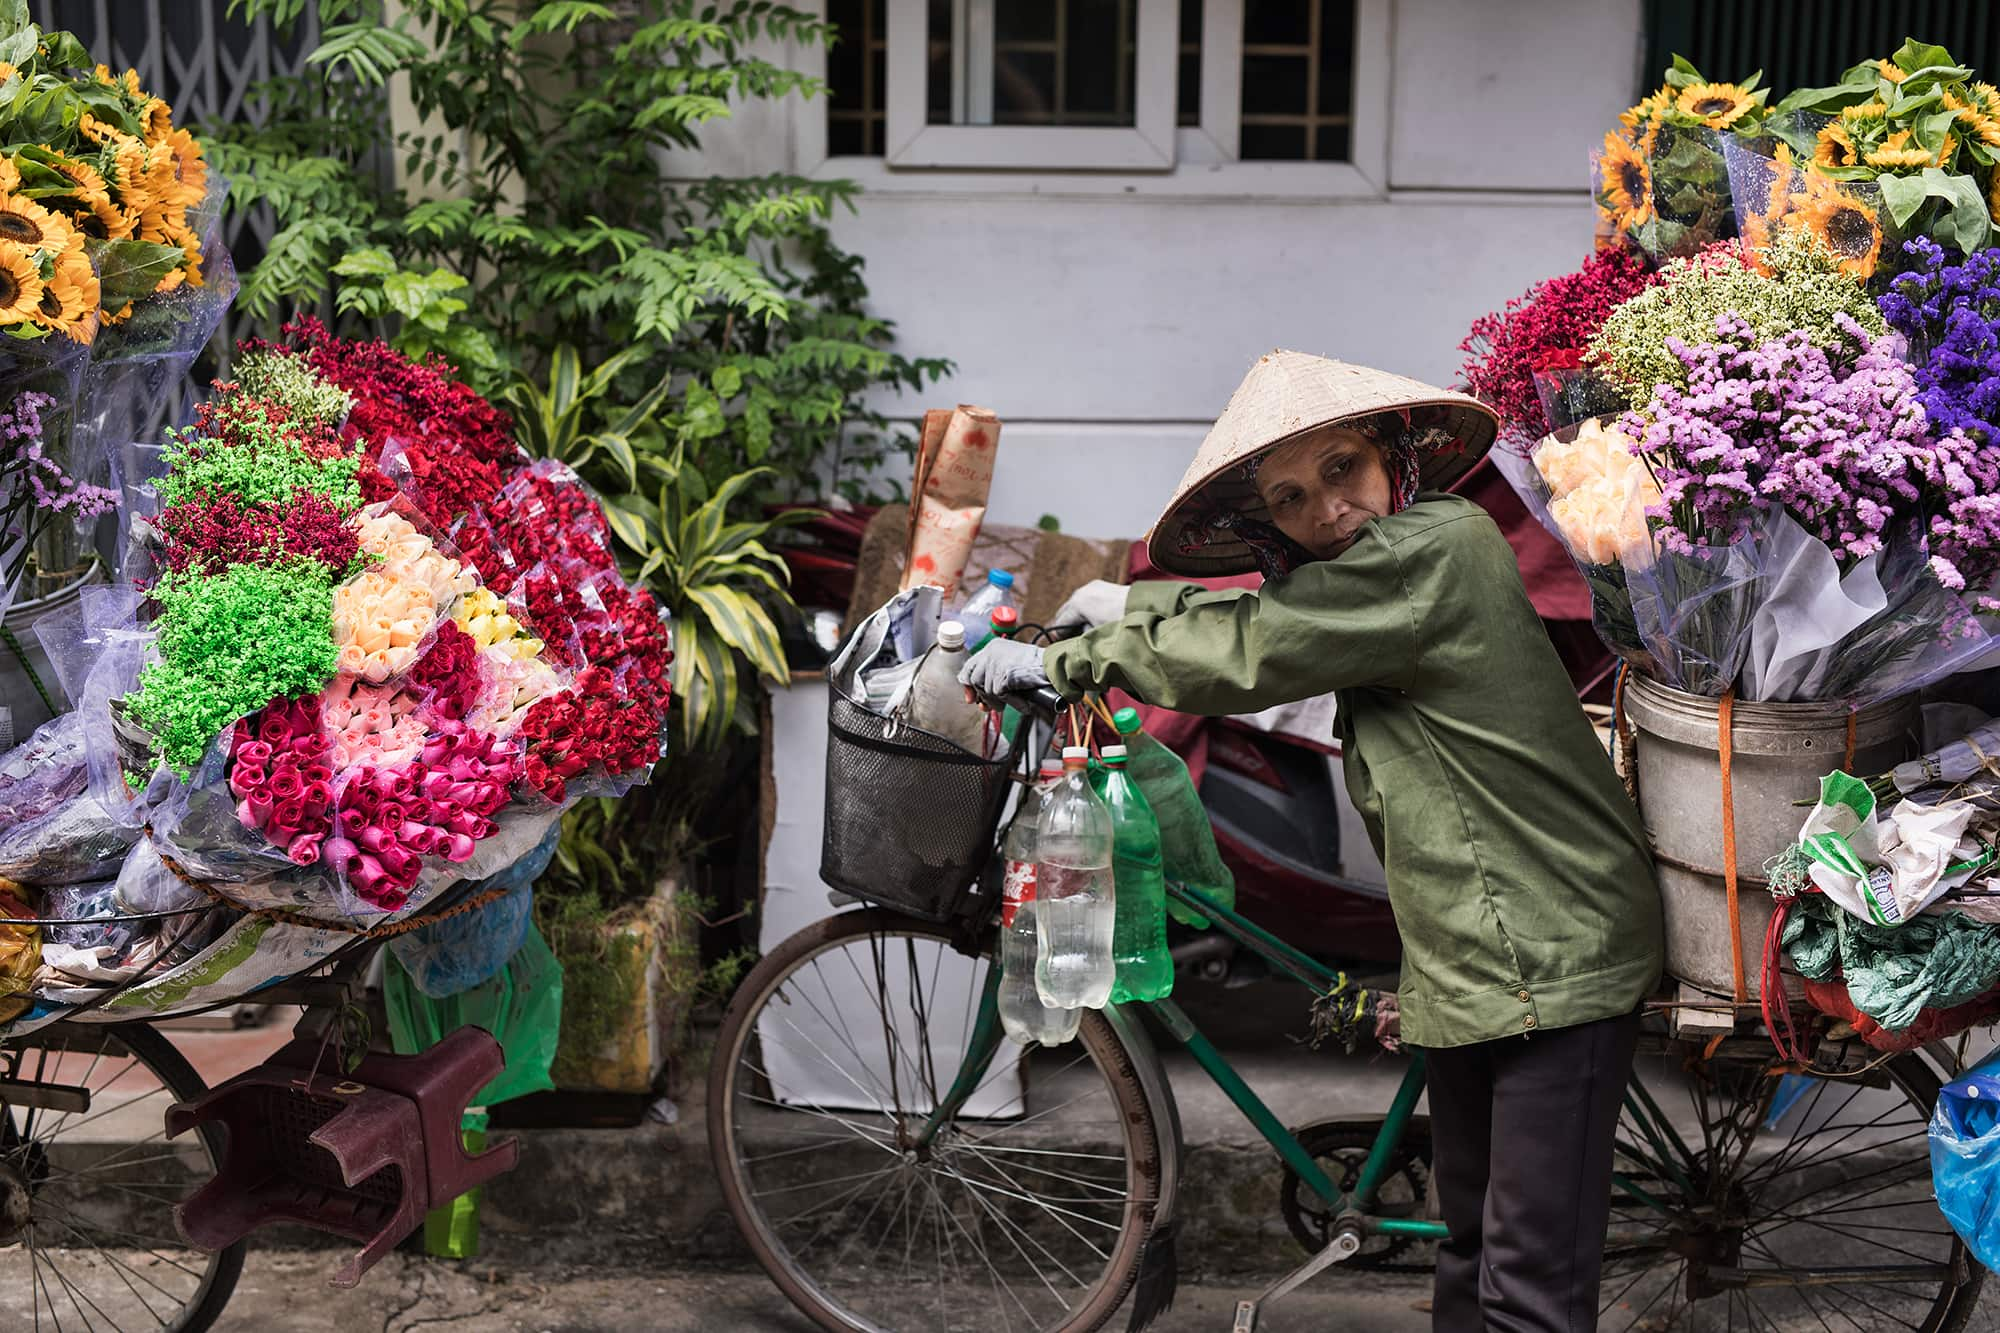 Flower seller on bicylce surrounded by colourful flowers in Hanoi